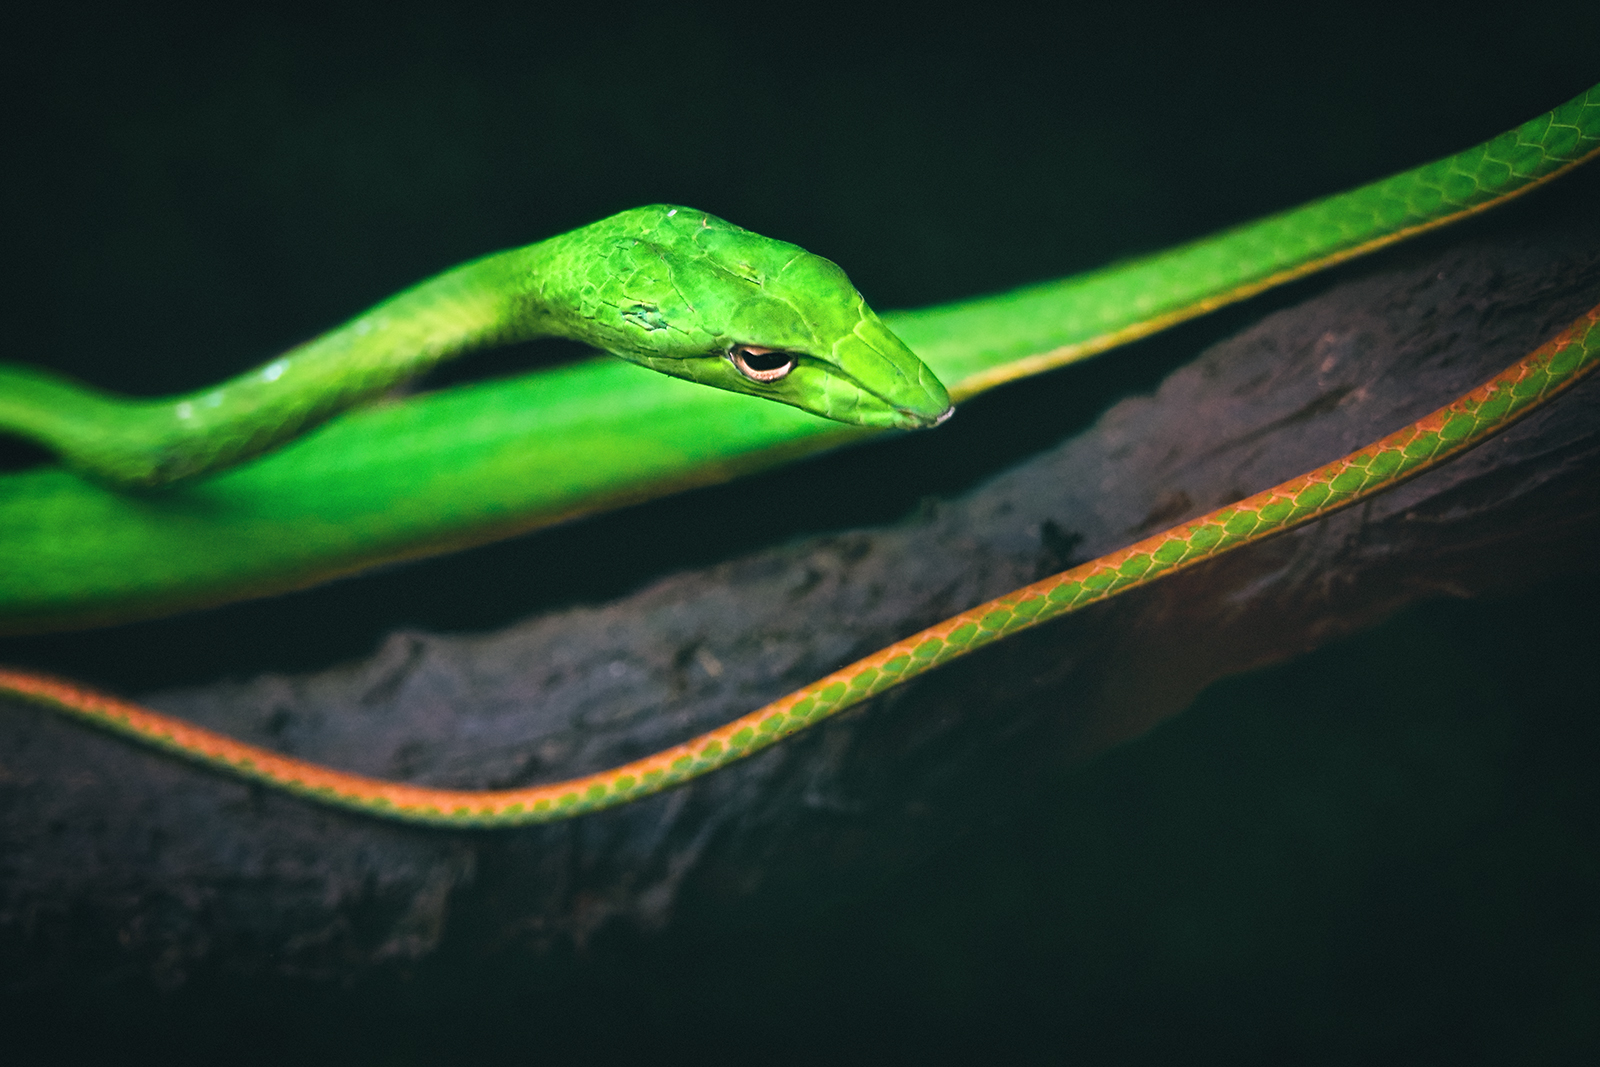 Closeup of a Long-nosed Tree Snake